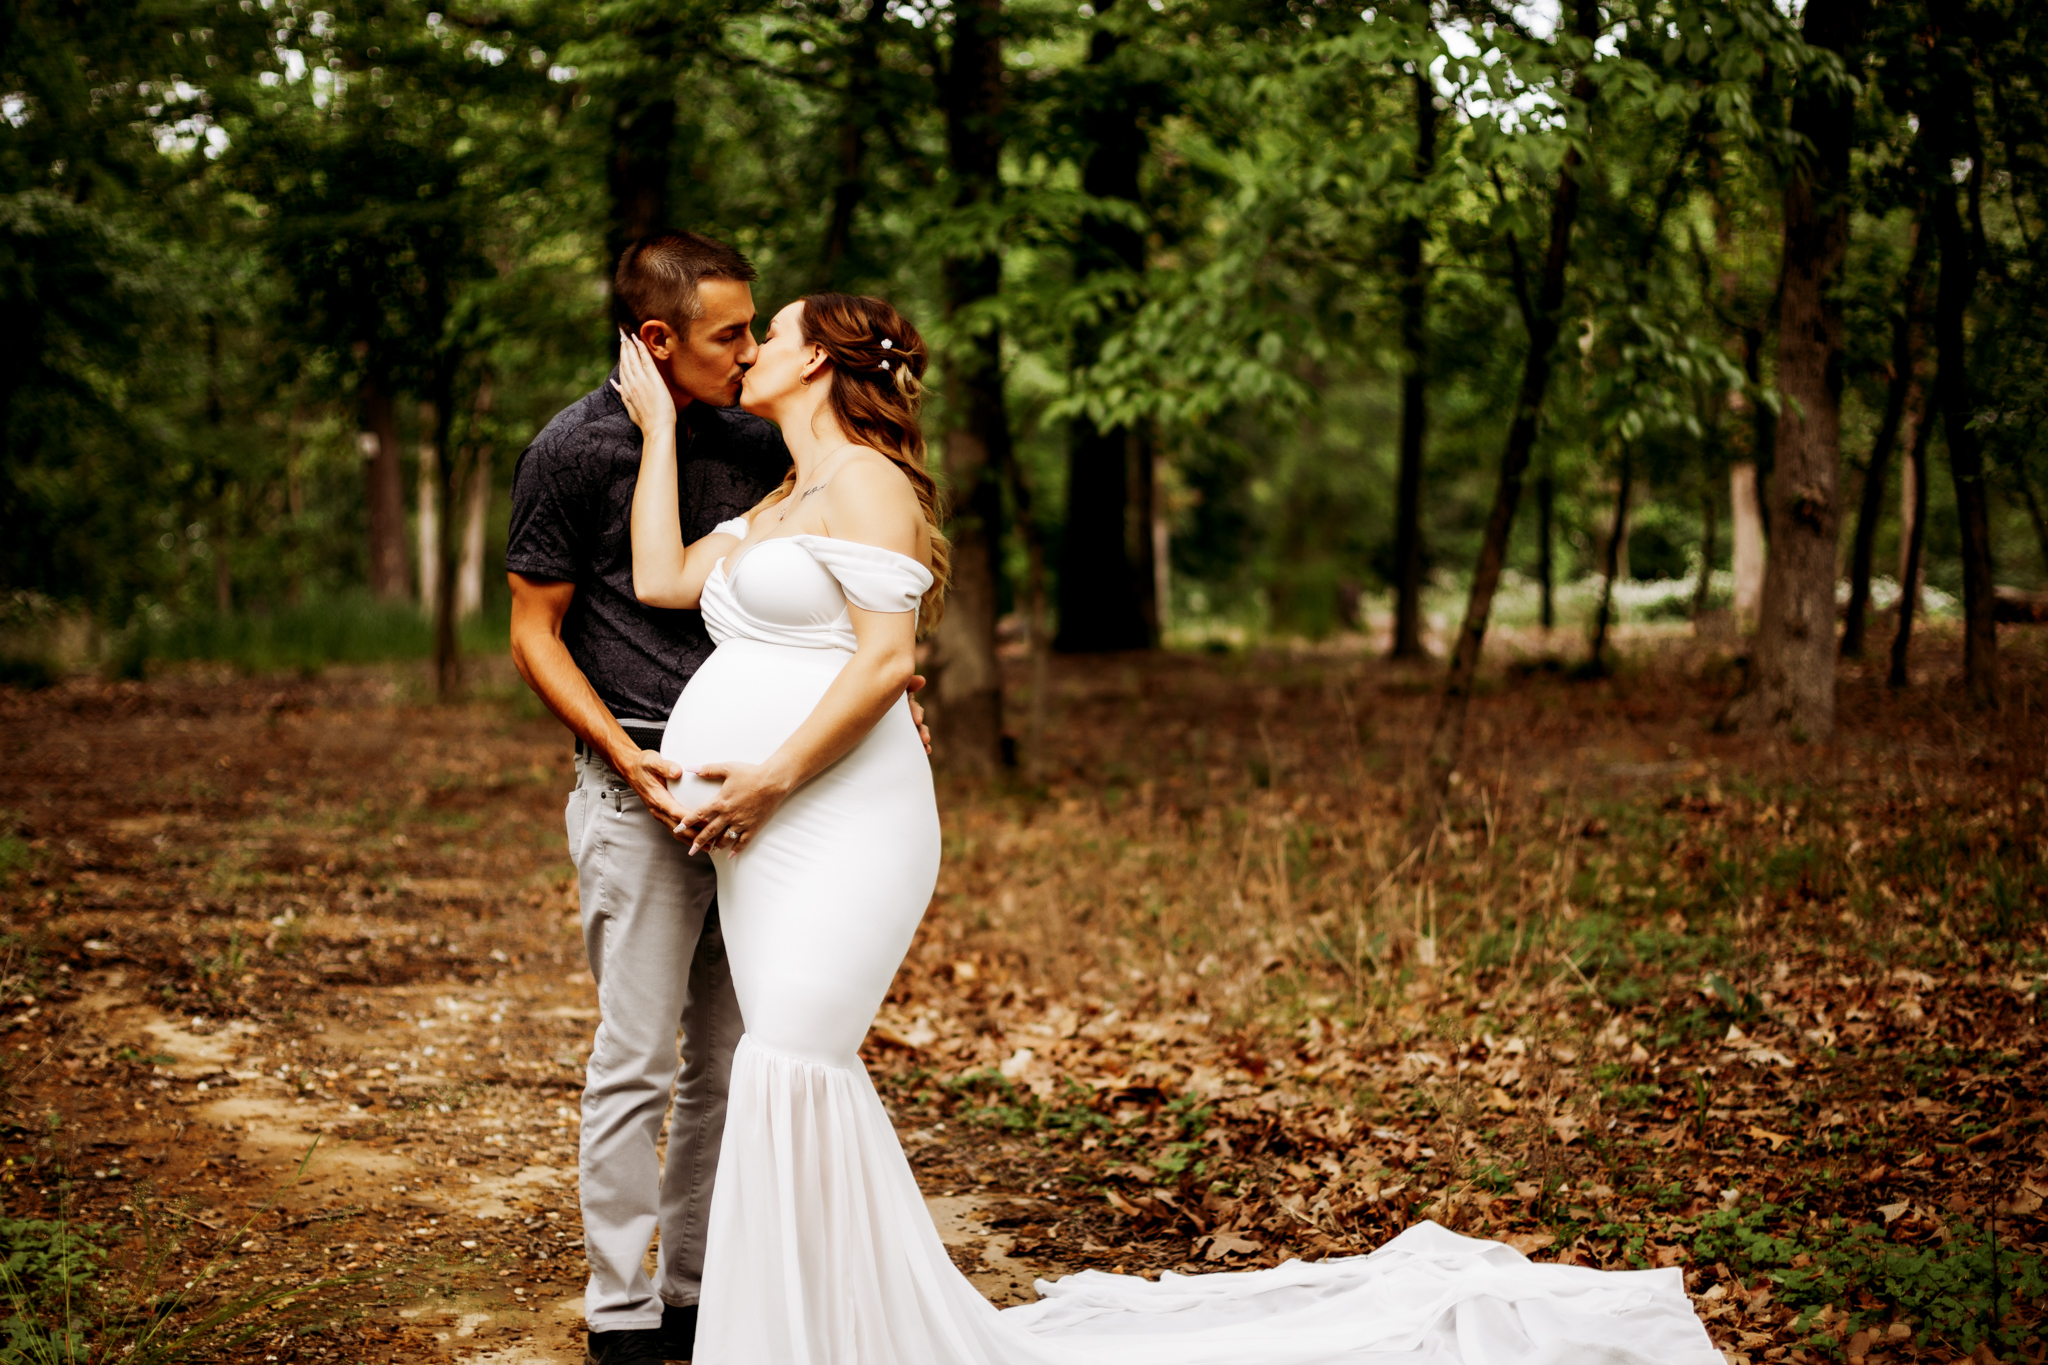 pregnant woman kissing her husband while cradling her baby during her Crystal Bridges maternity photography session